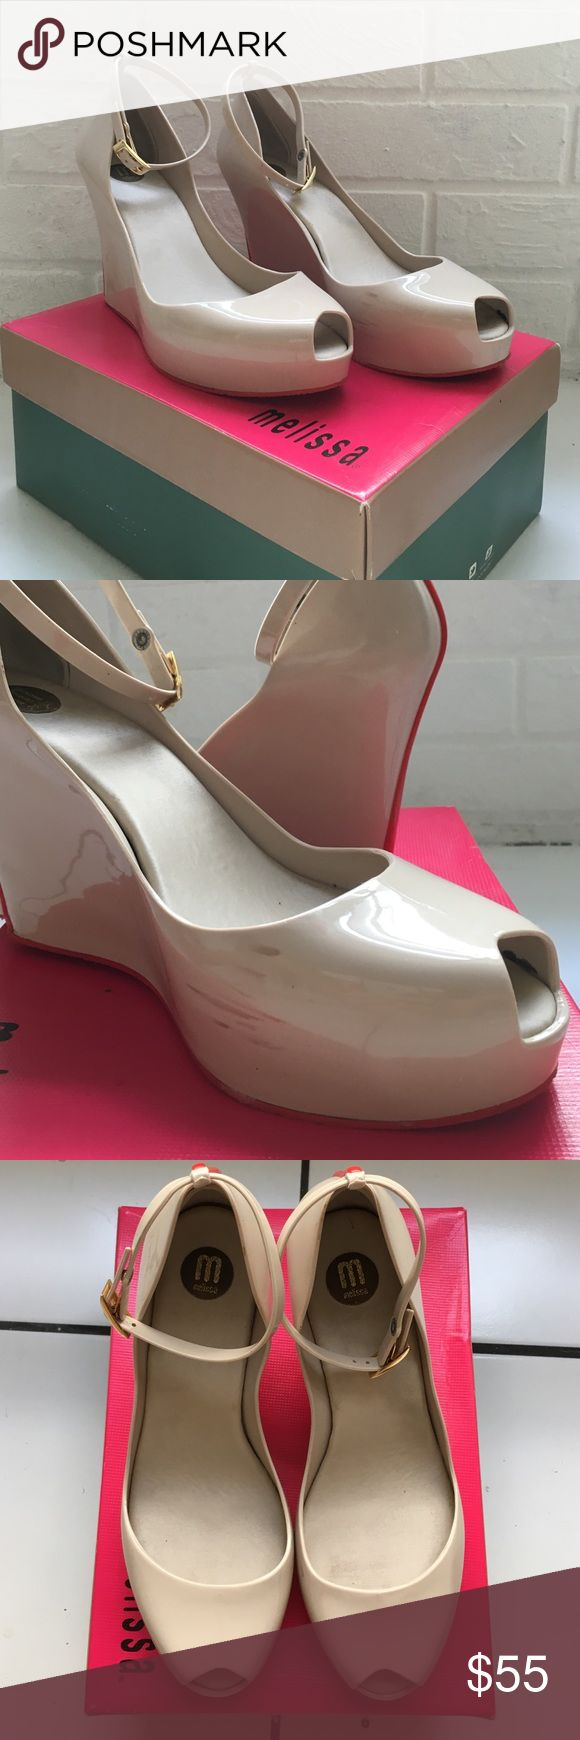 Cream High heels Melissa Jelly Shoes are extremely comfortable! No need to break these bad babies in. They're perfect for any occasion and have the beautiful and sexy red bottoms that we all enjoy! Melissa Shoes Platforms